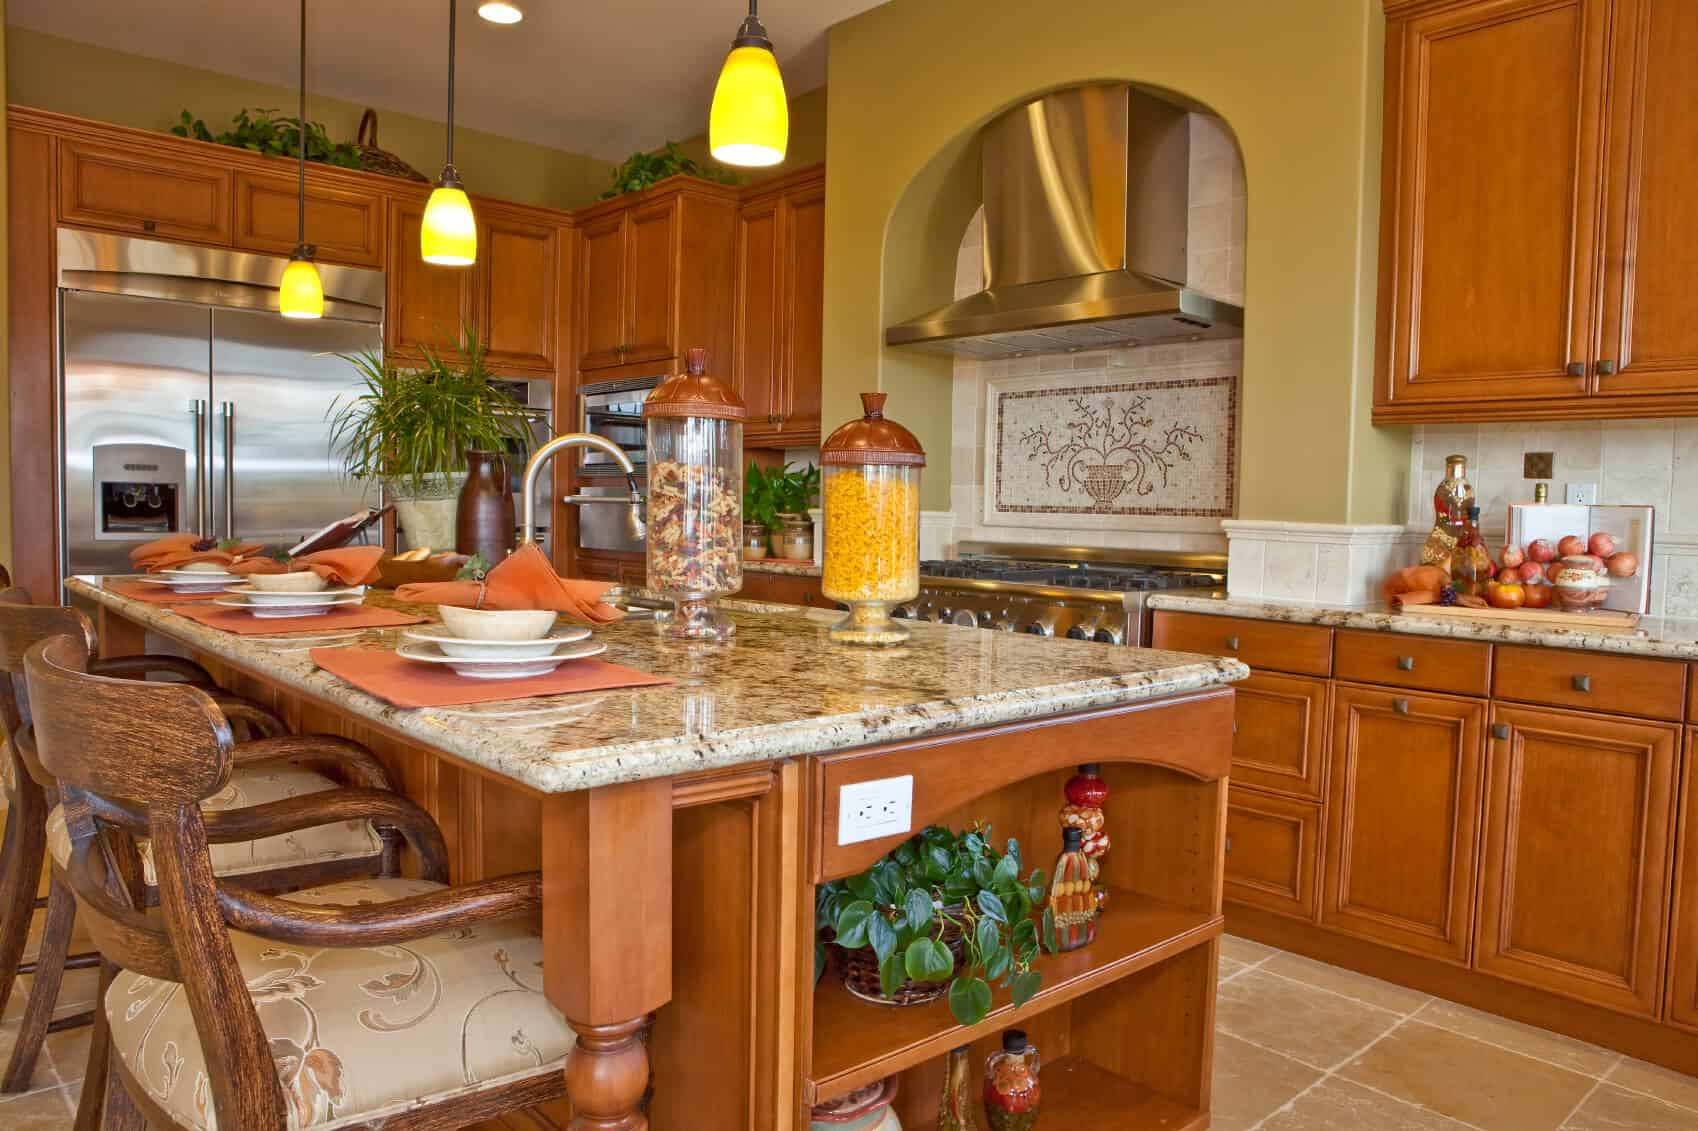 Exceptionnel Warm Wood Tones Unify This Kitchen Featuring Large Island With Ample Seating  Area, Built